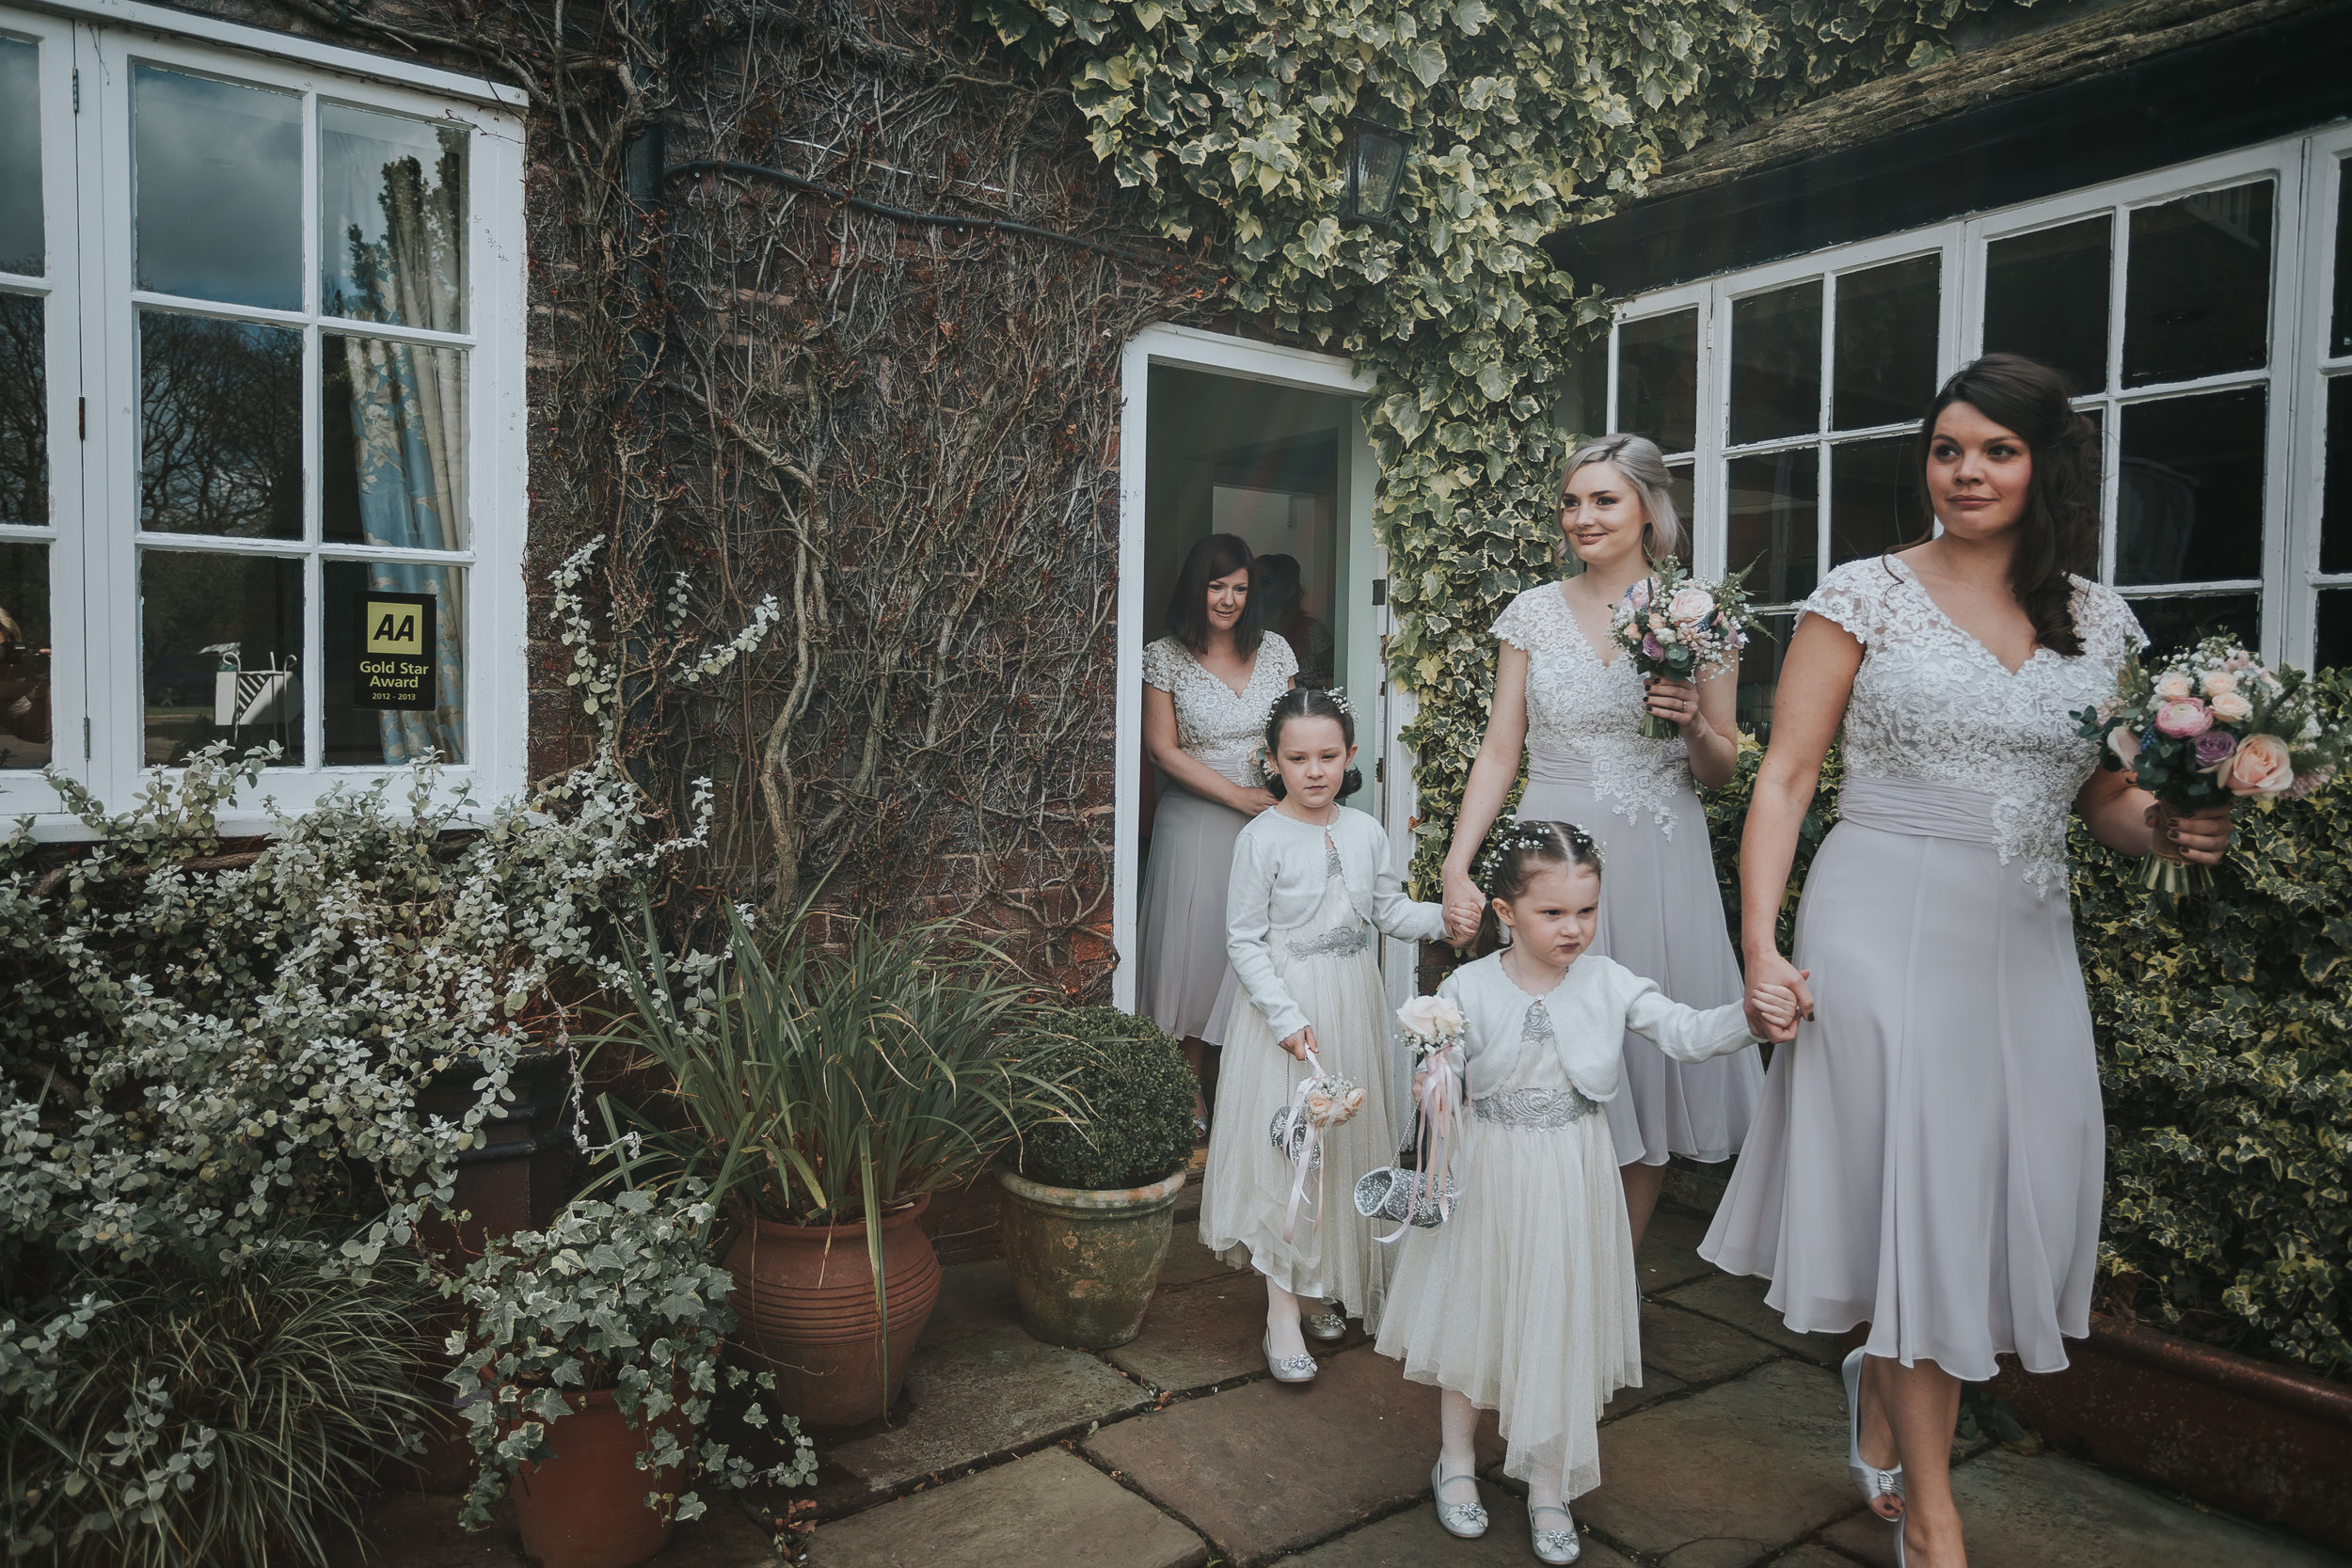 Hilltop Country House Wedding Photography - 21.jpg